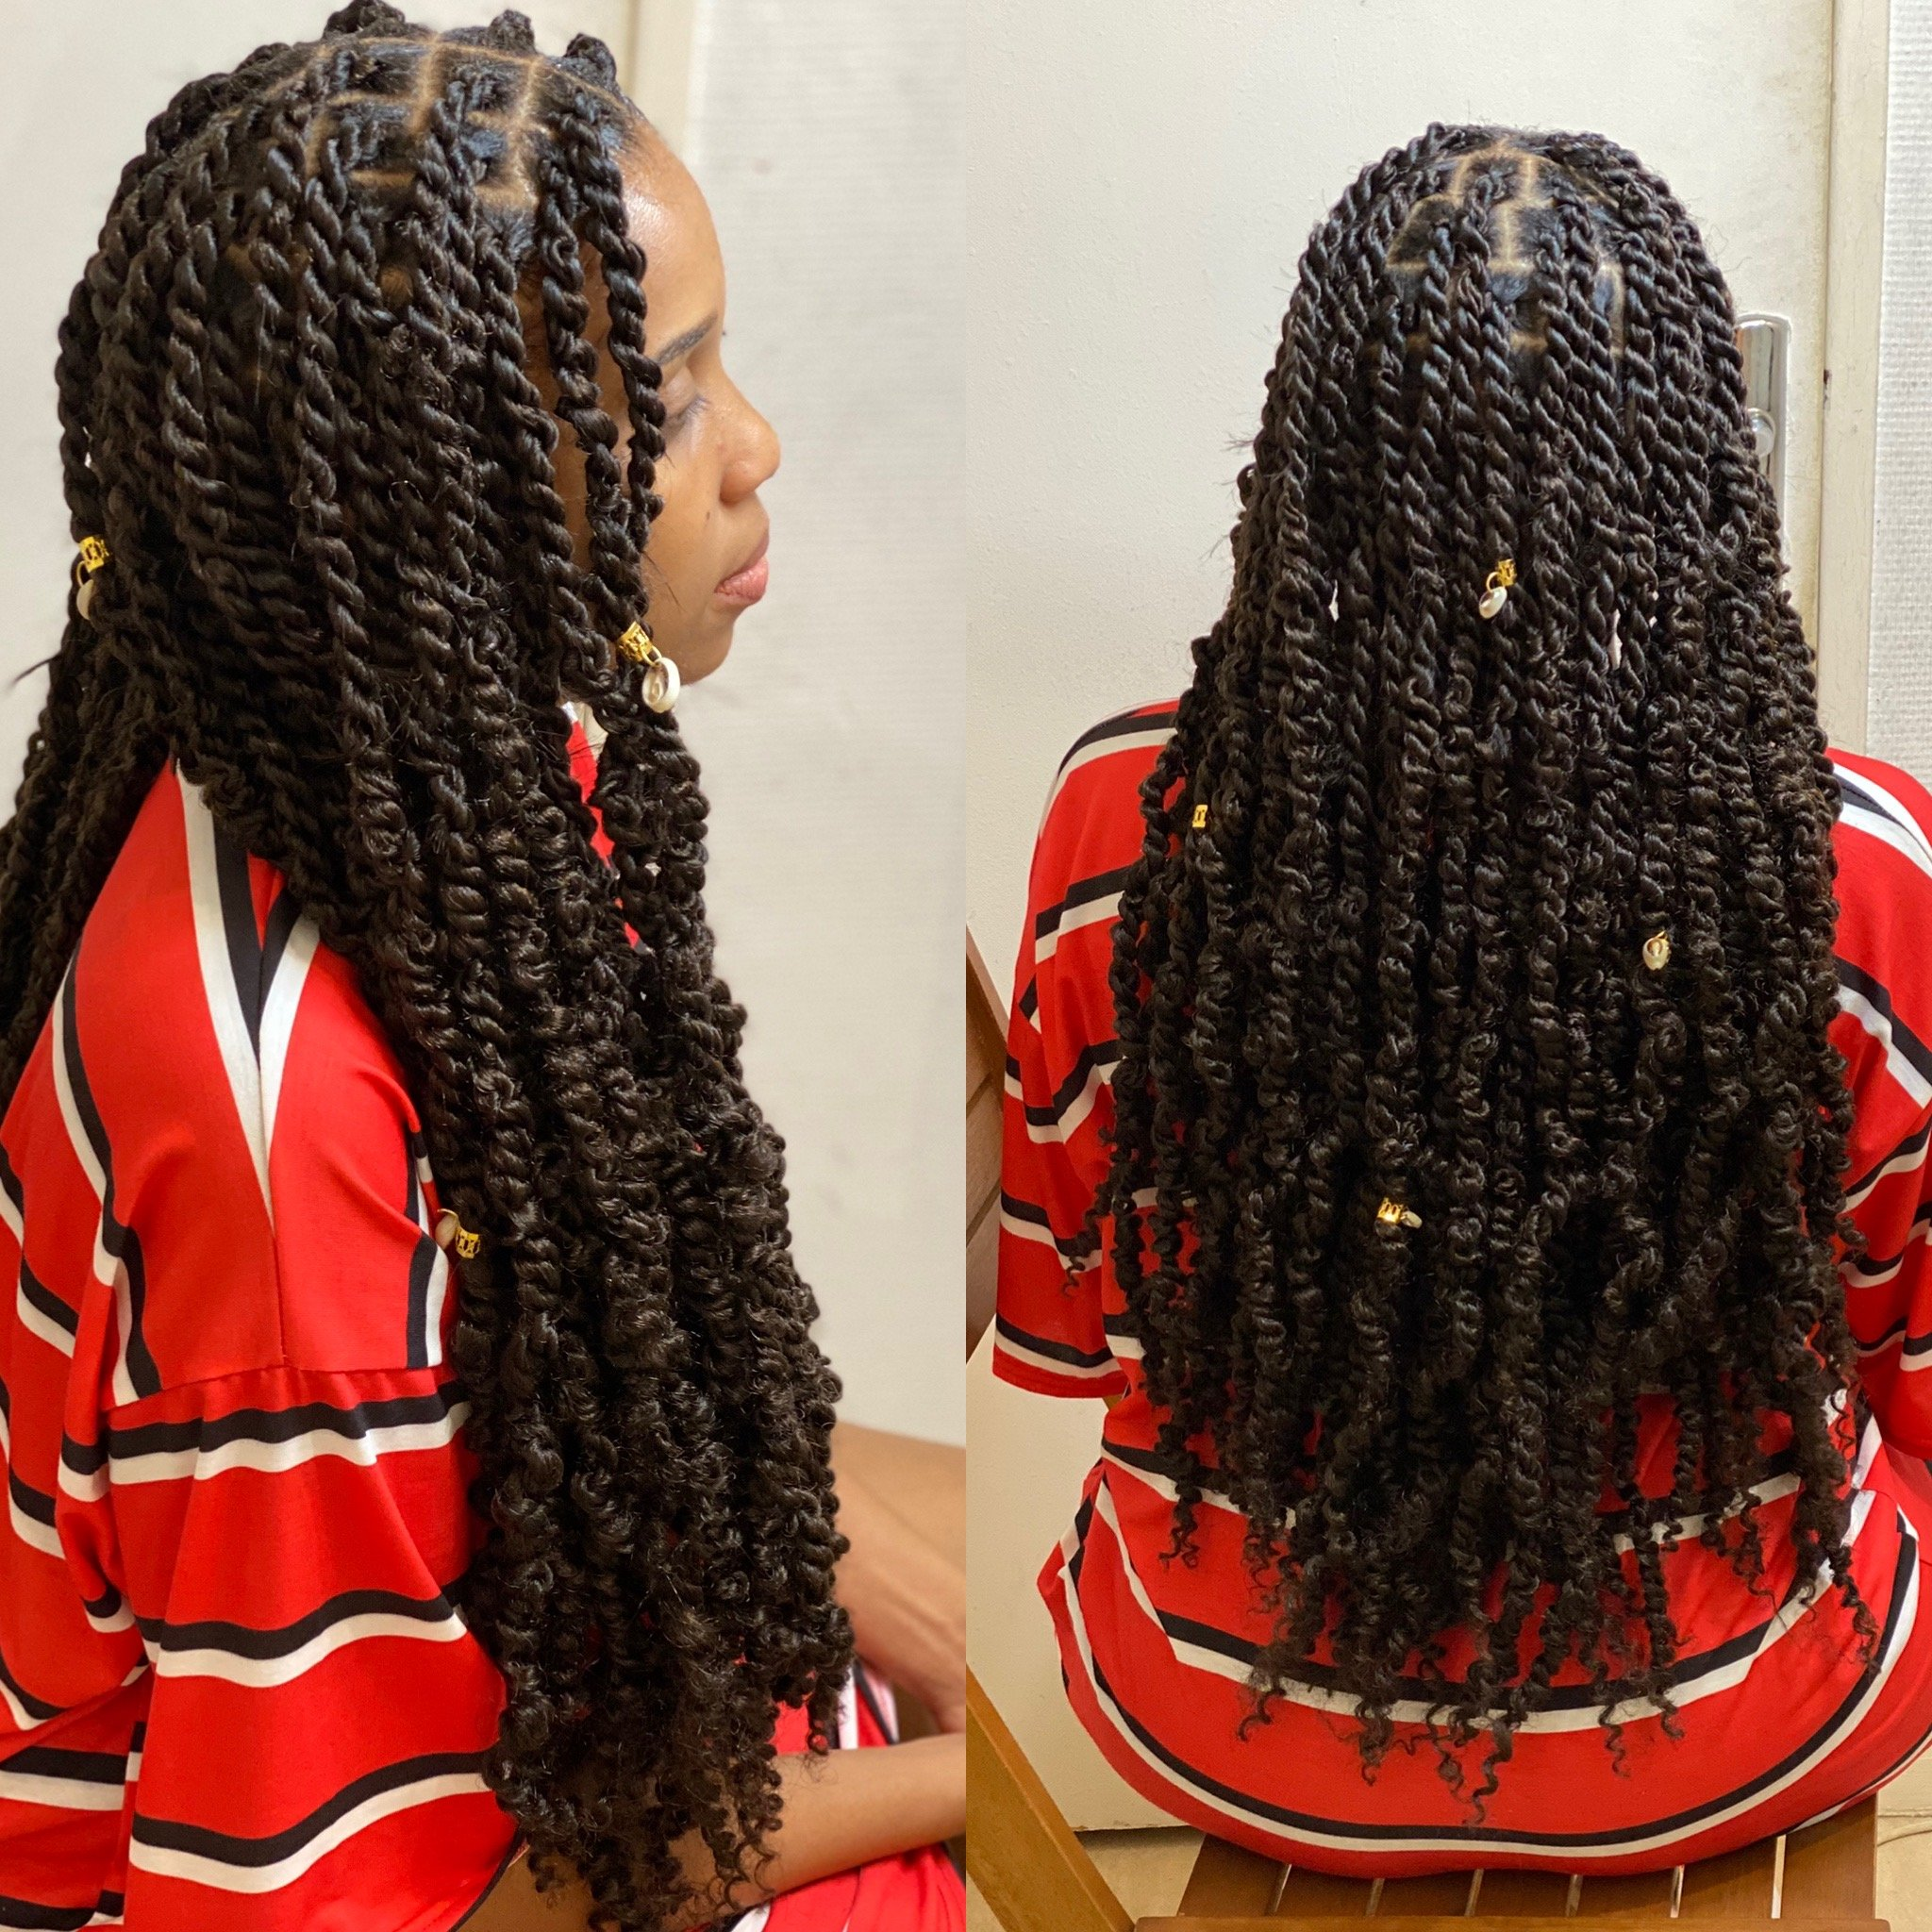 salon de coiffure afro tresse tresses box braids crochet braids vanilles tissages paris 75 77 78 91 92 93 94 95 GDOUUXFU